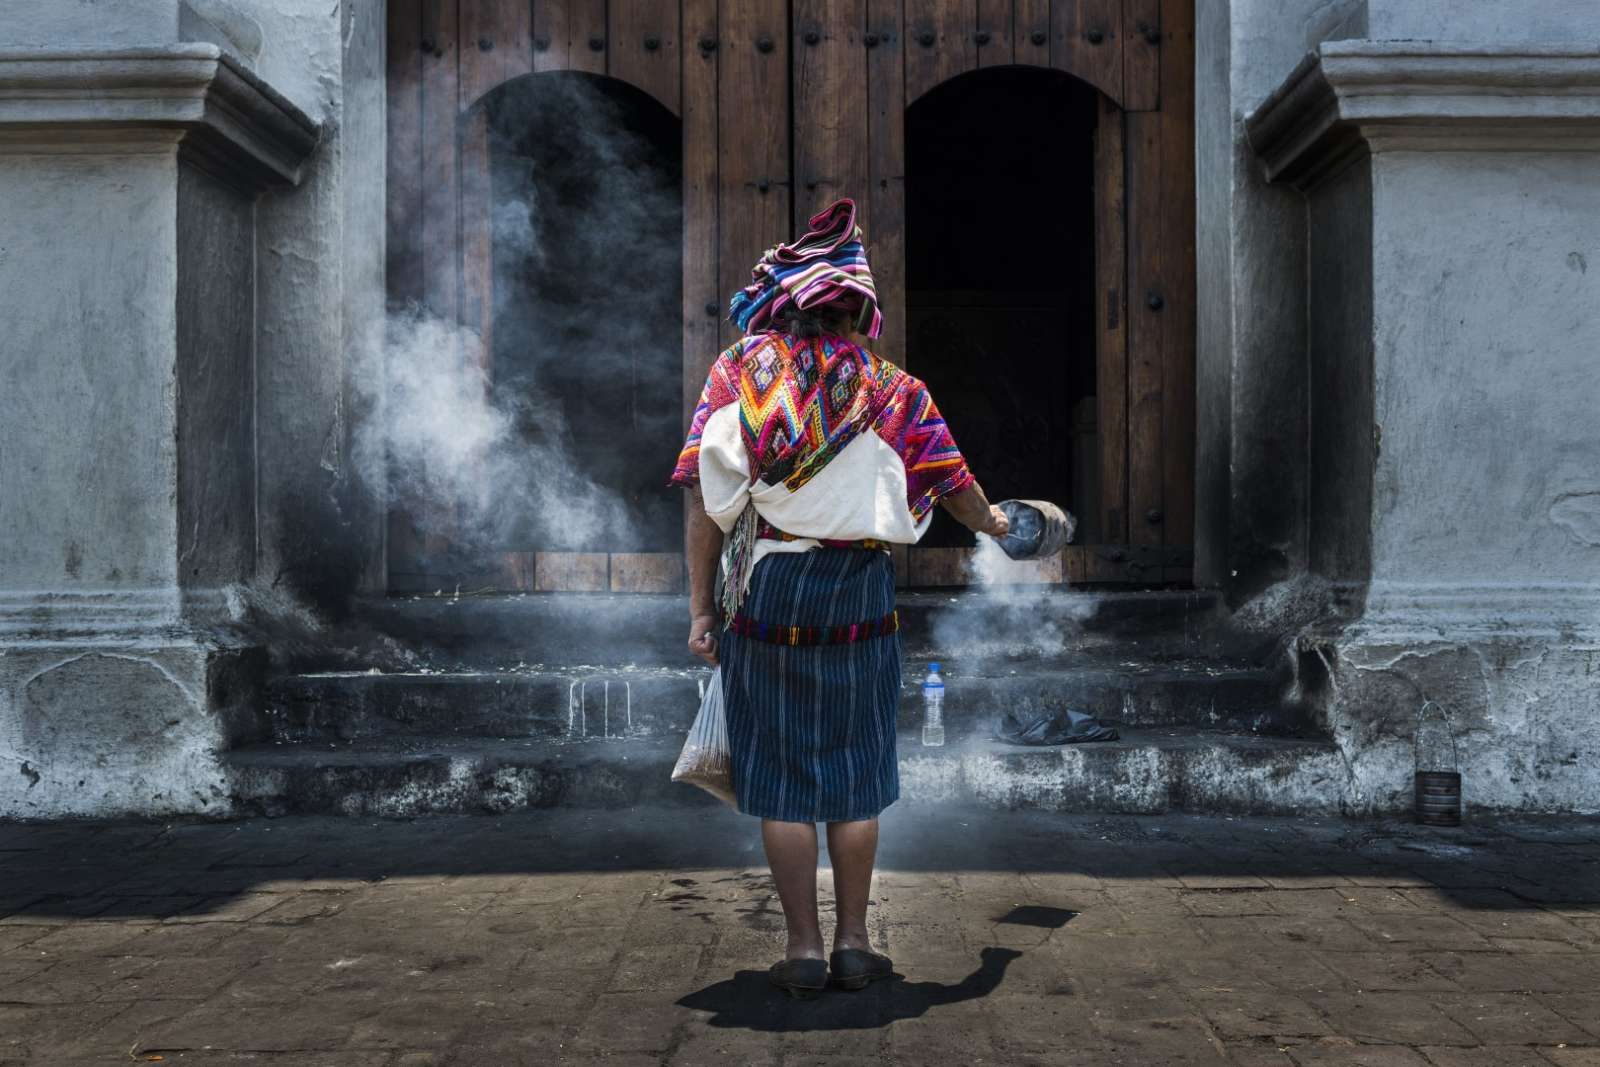 Mayan woman praying in front of Santo Tomas church at Chichicastenango, Guatemala